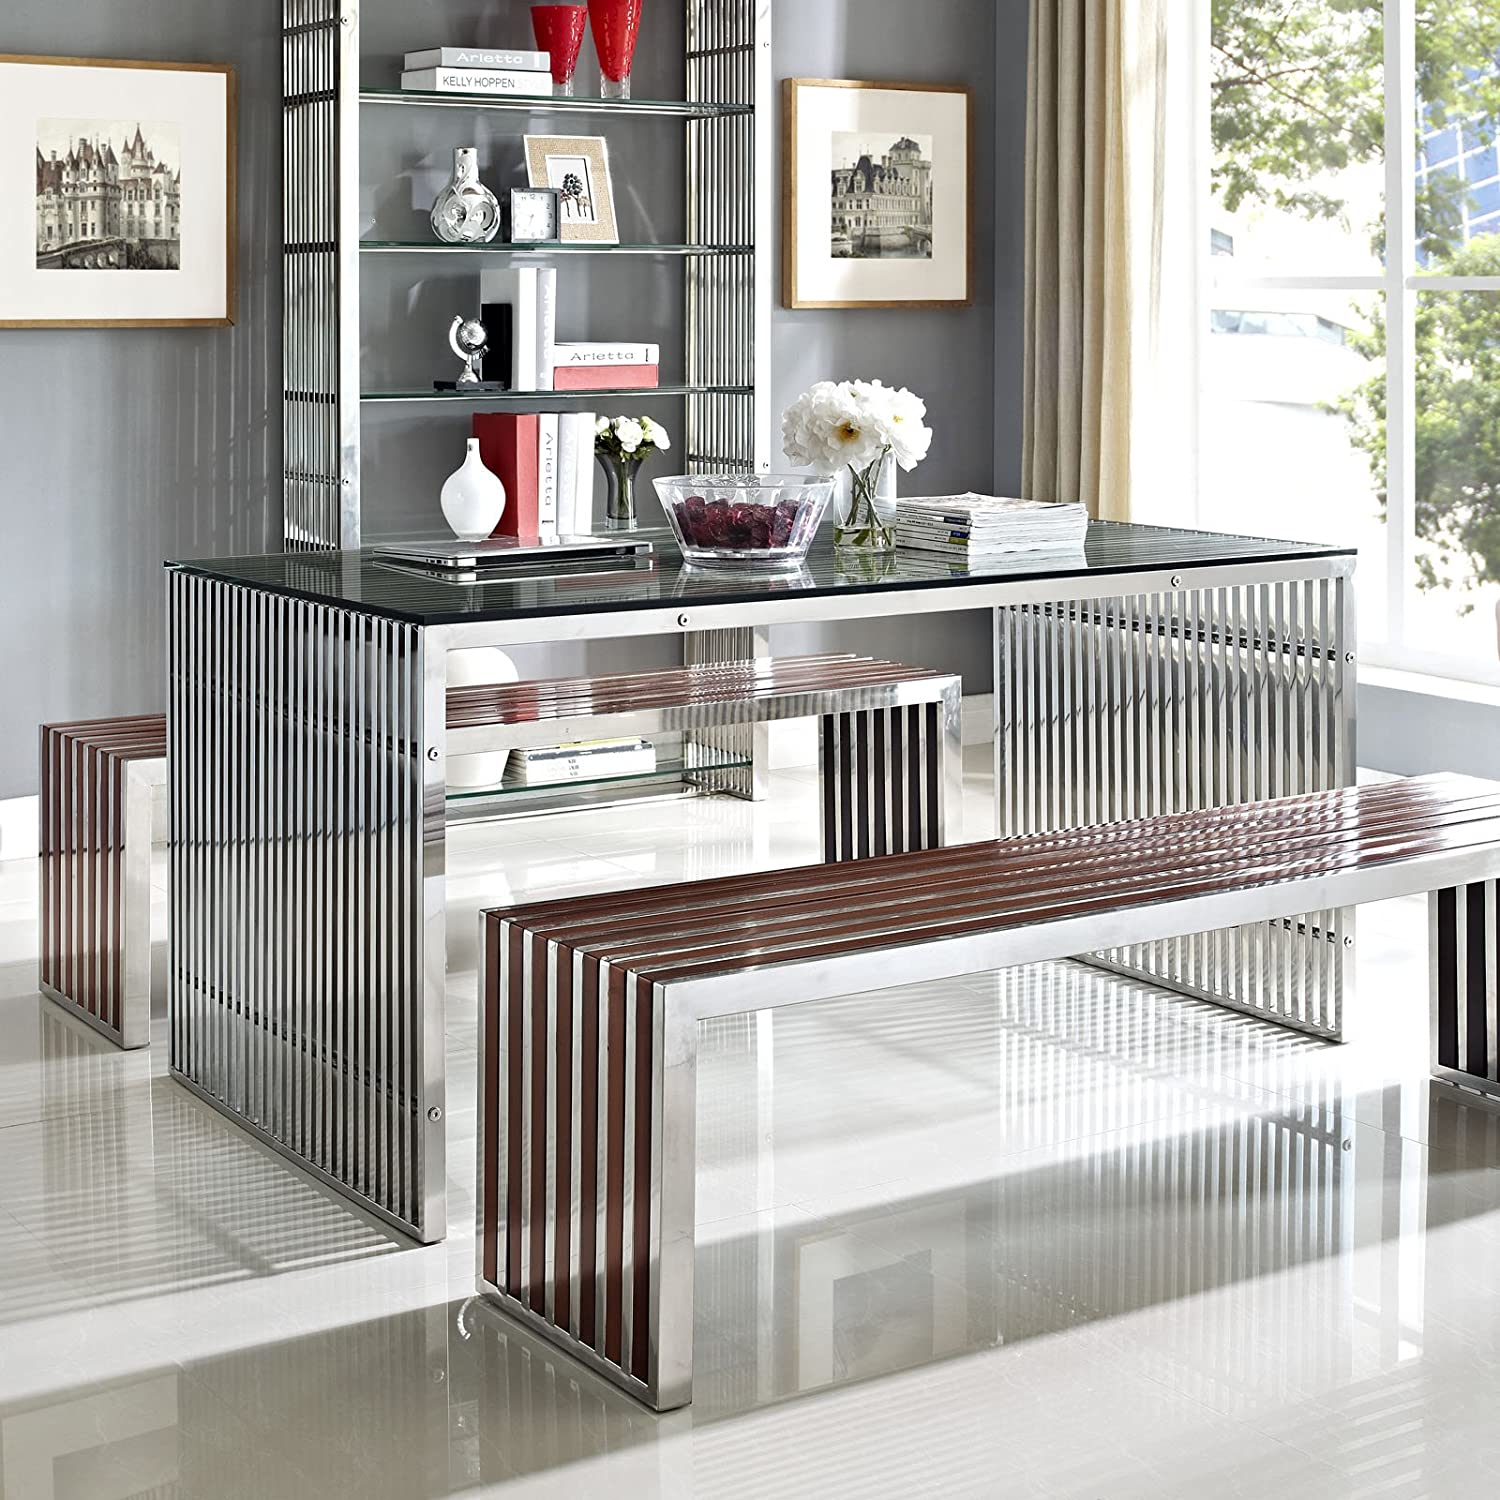 Captivating Amazon.com: Modway Gridiron Stainless Steel Dining Table In Silver: Kitchen  U0026 Dining